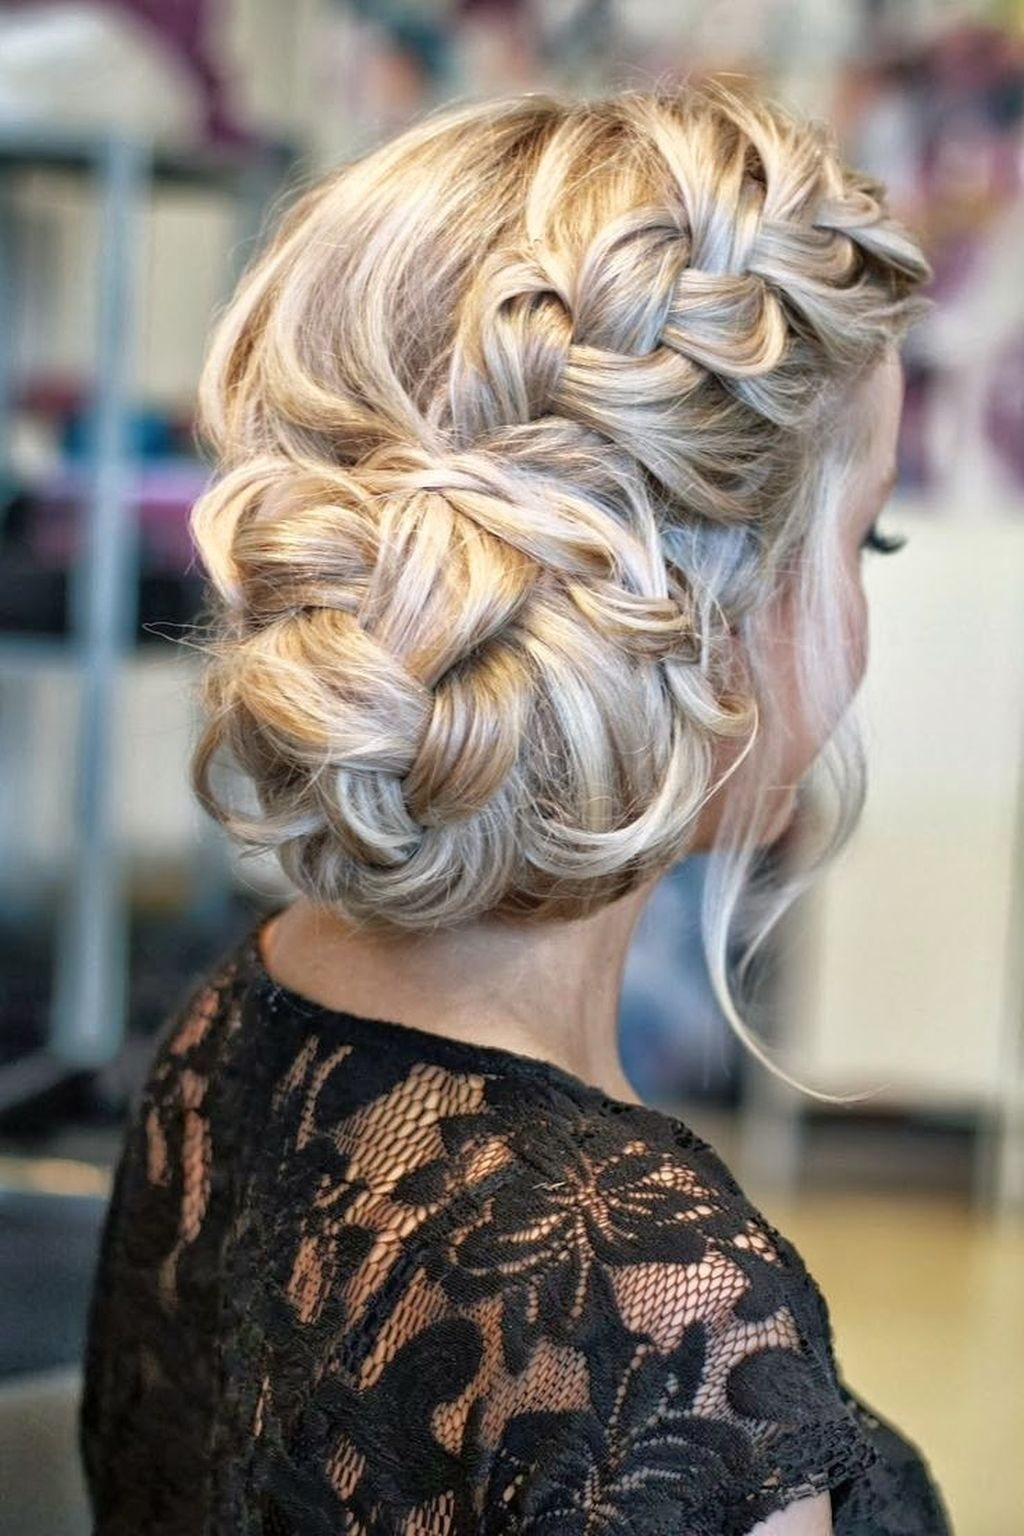 classy wedding hairstyle ideas for long hair women wedding